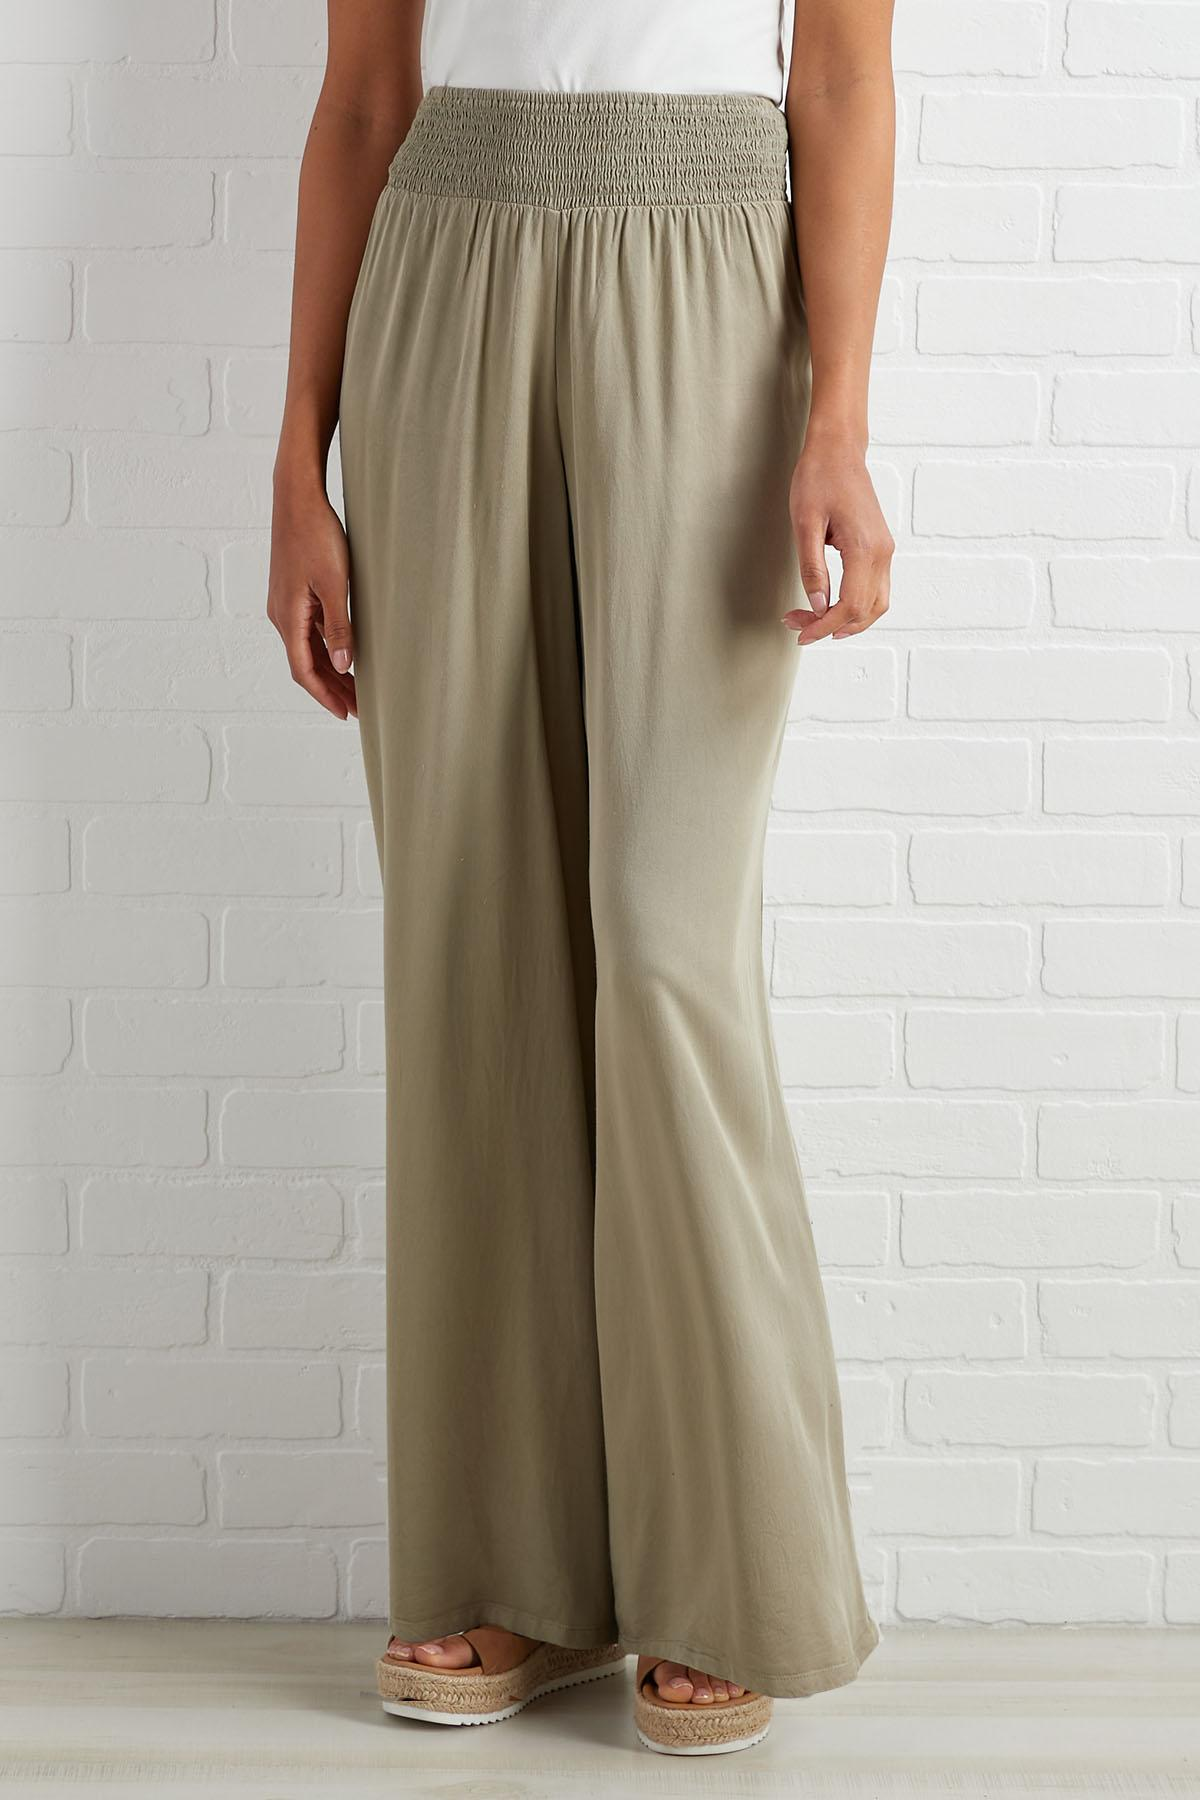 Style Of Summer Pants